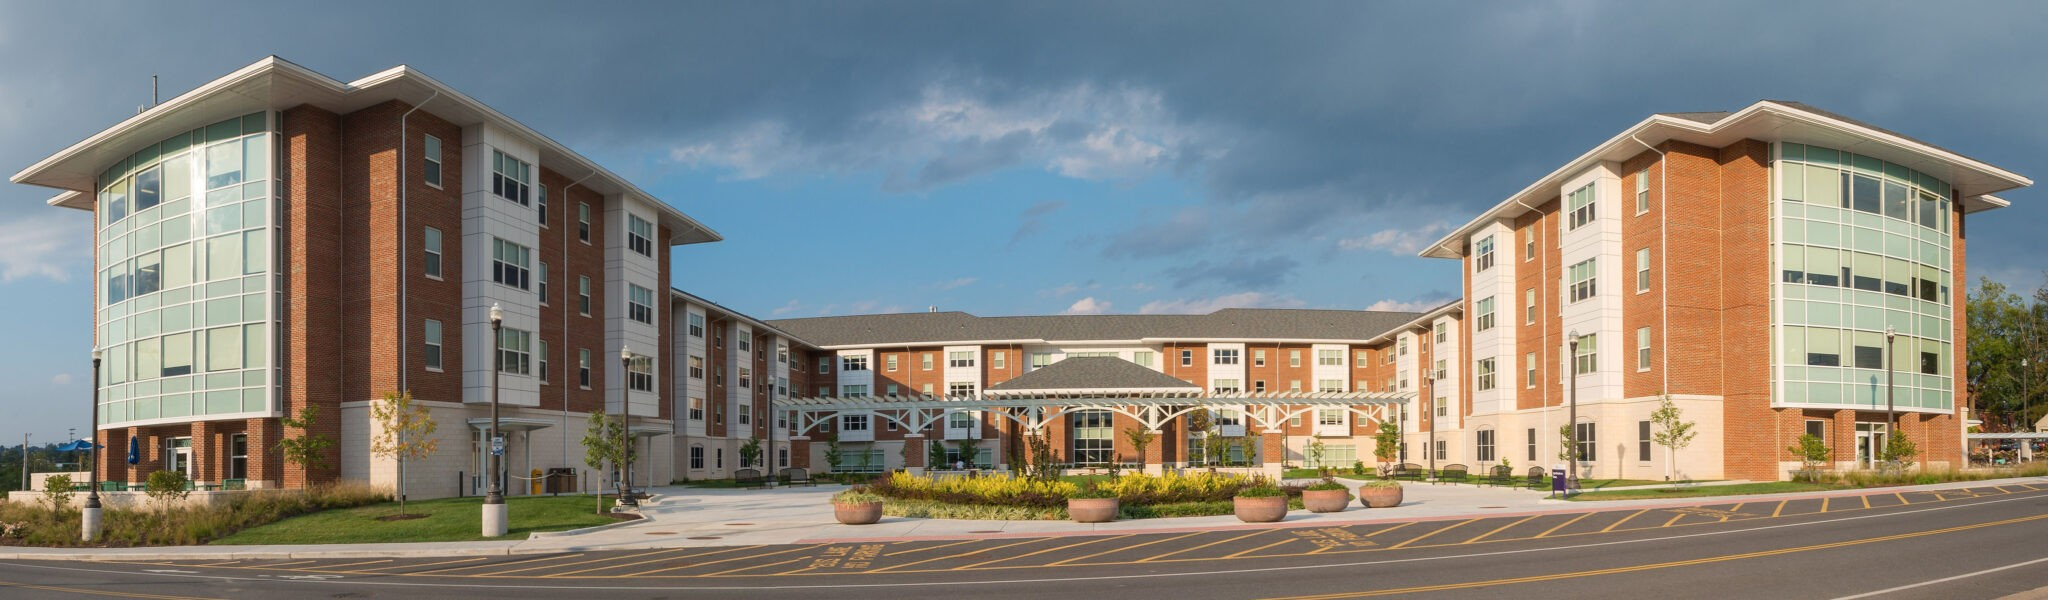 Photo of completed roofing project at James Madison University Grace Street Student Housing